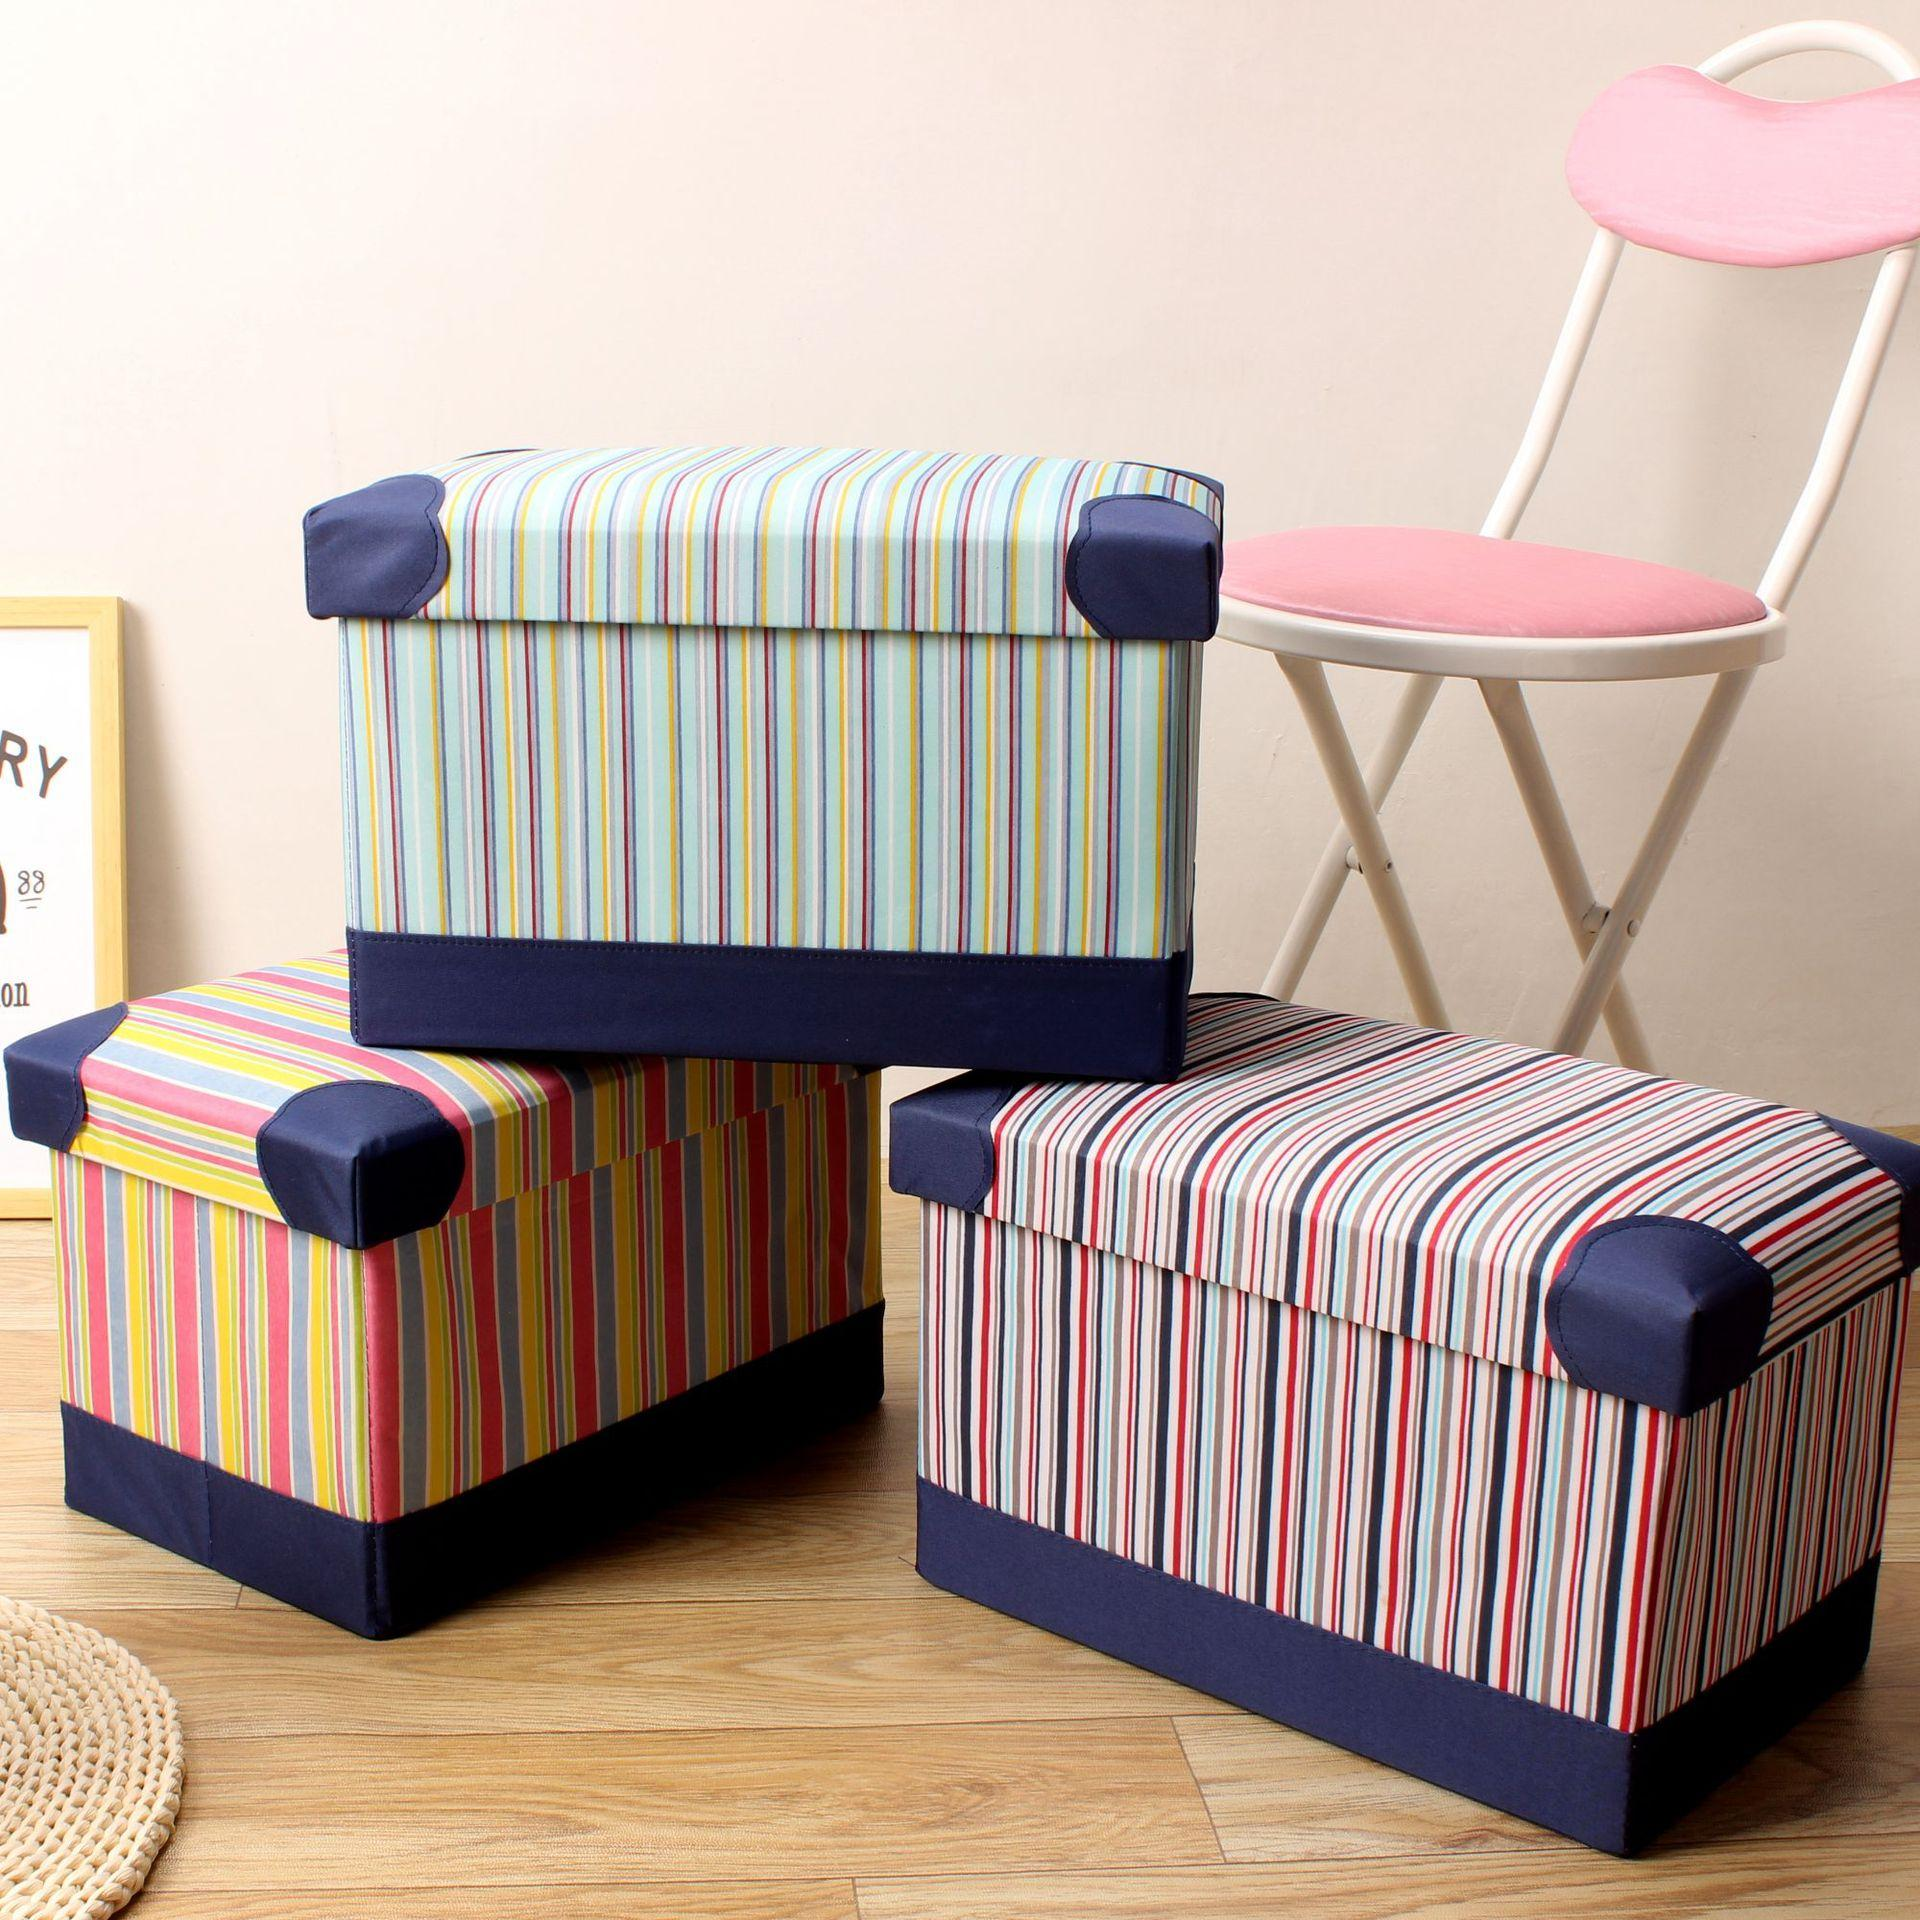 2019 New Products Leather Stripes New Style Storage Chair Japanese Style Foldable Leather Storage Stool Large Size Feet Stool